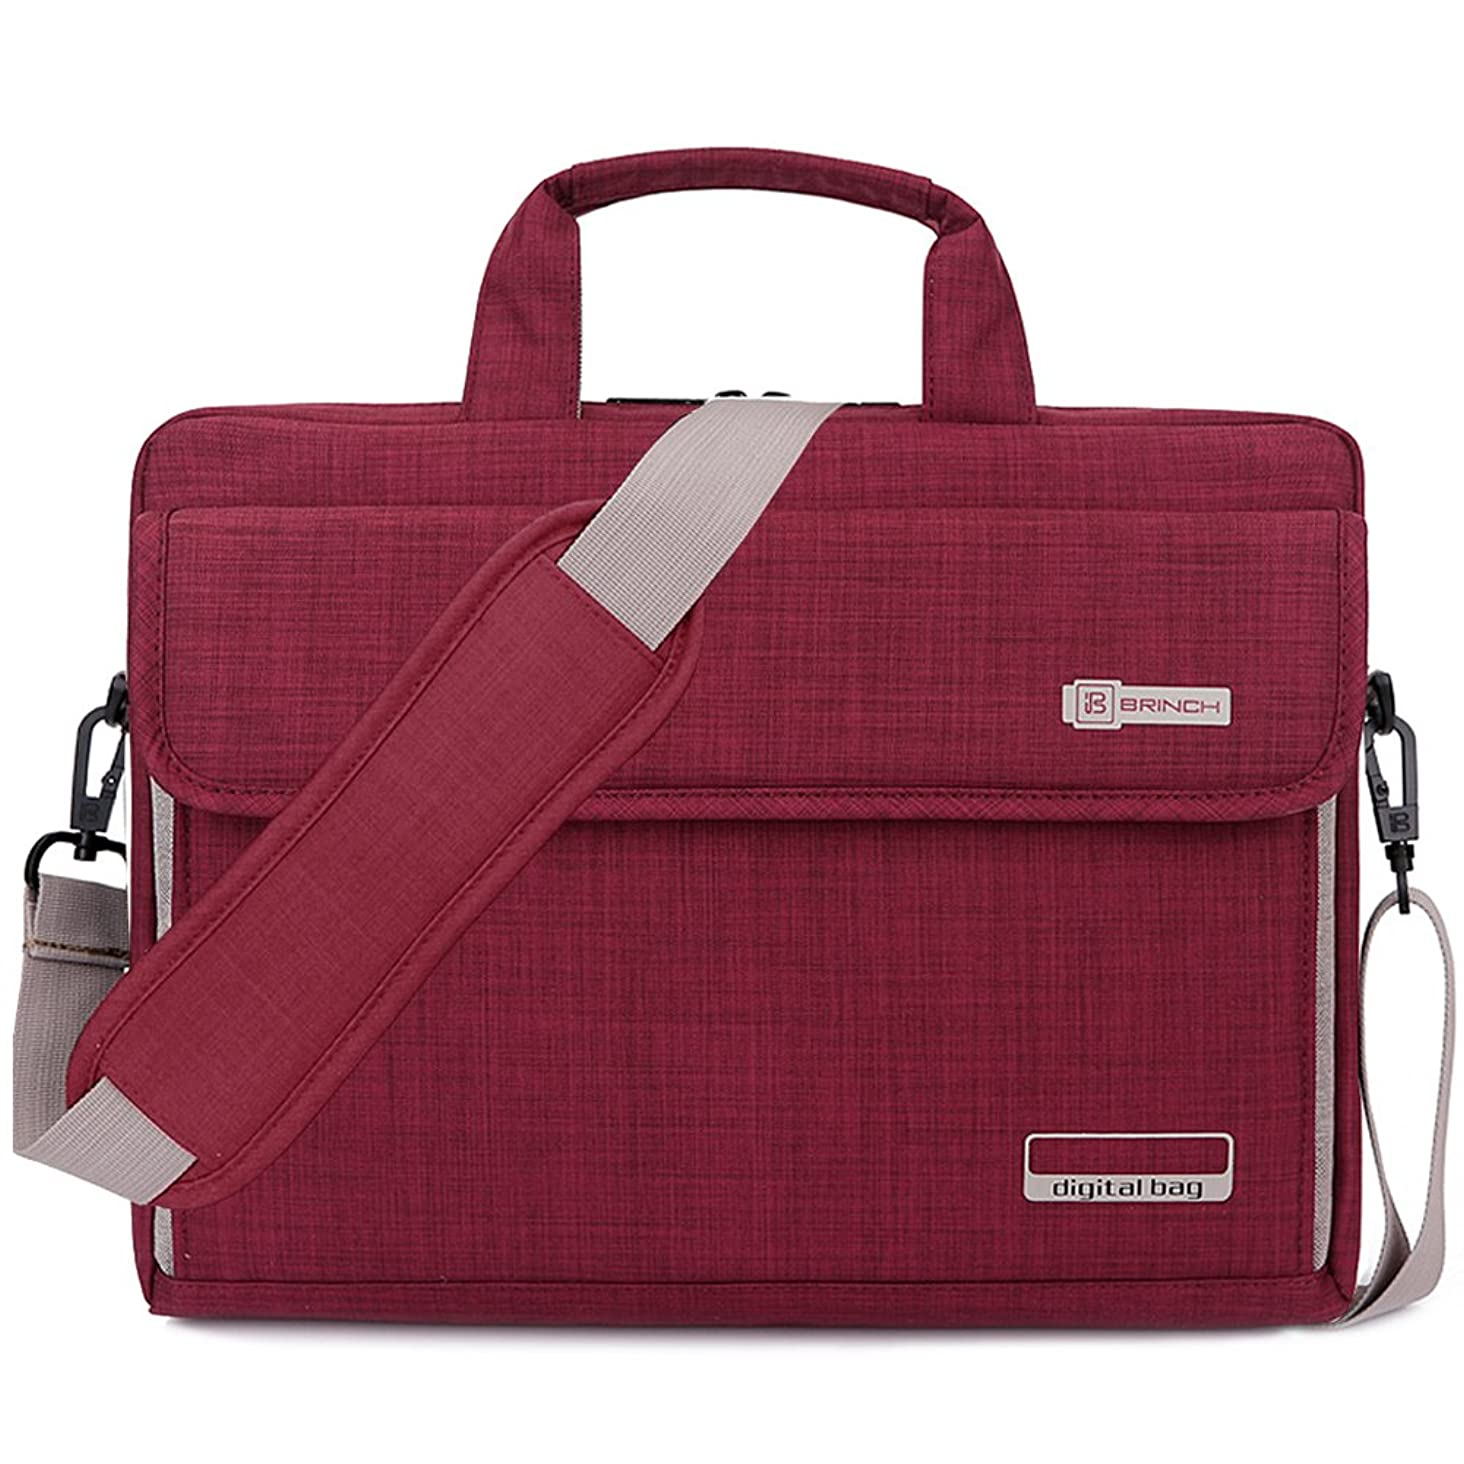 BRINCH Laptop Bag Oxford Fabric Portable Notebook Messenger Bag Shoulder Briefcase Handbag Travel Carrying Sleeve Case w/Shoulder and Luggage Strap for Men Women Compatible 17-17.3 Inch Laptop, Red